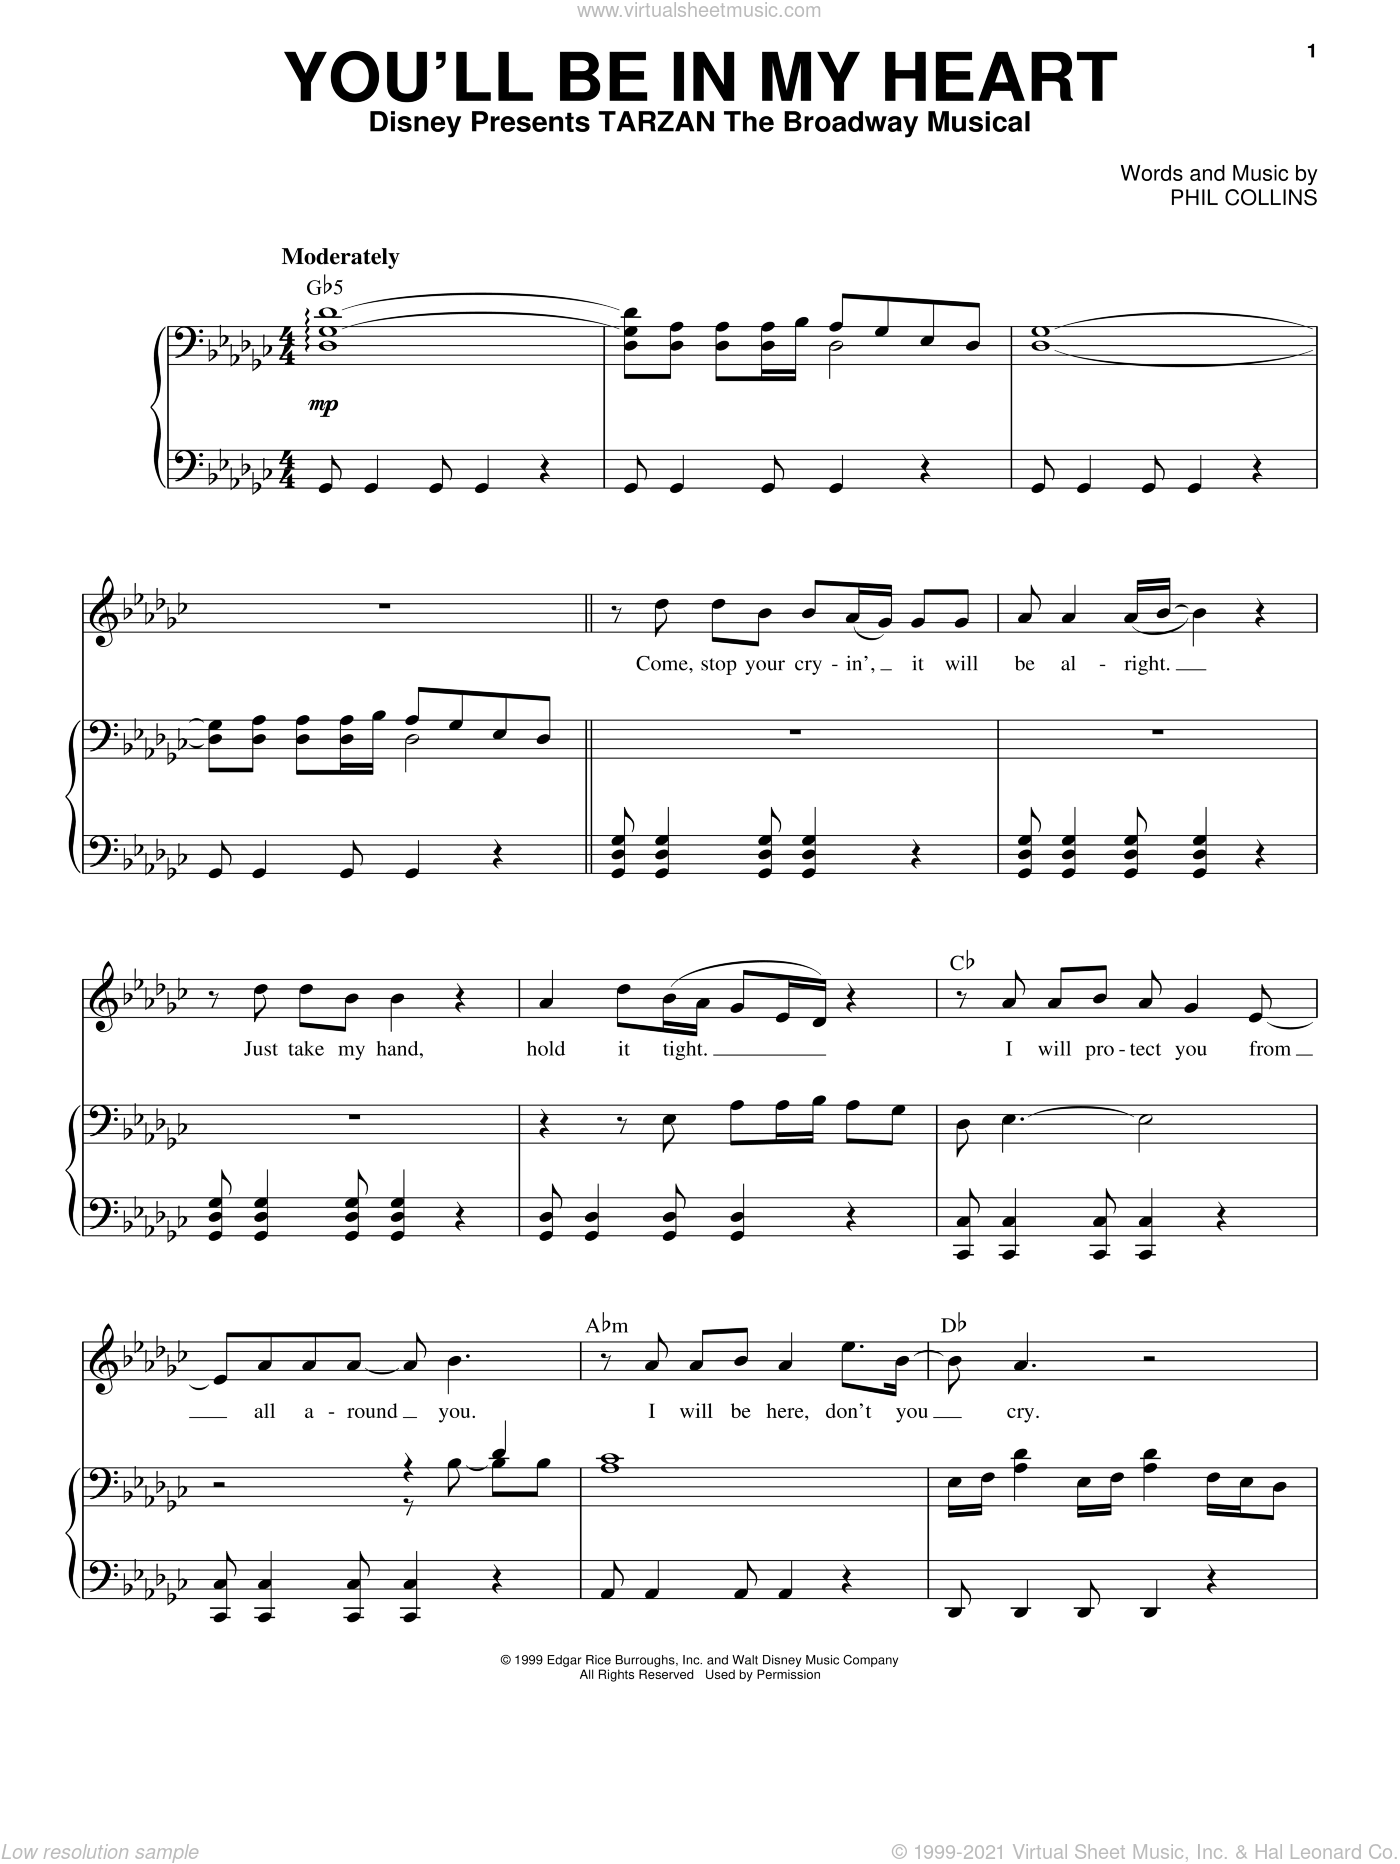 You'll Be In My Heart sheet music for voice and piano by Phil Collins, intermediate skill level